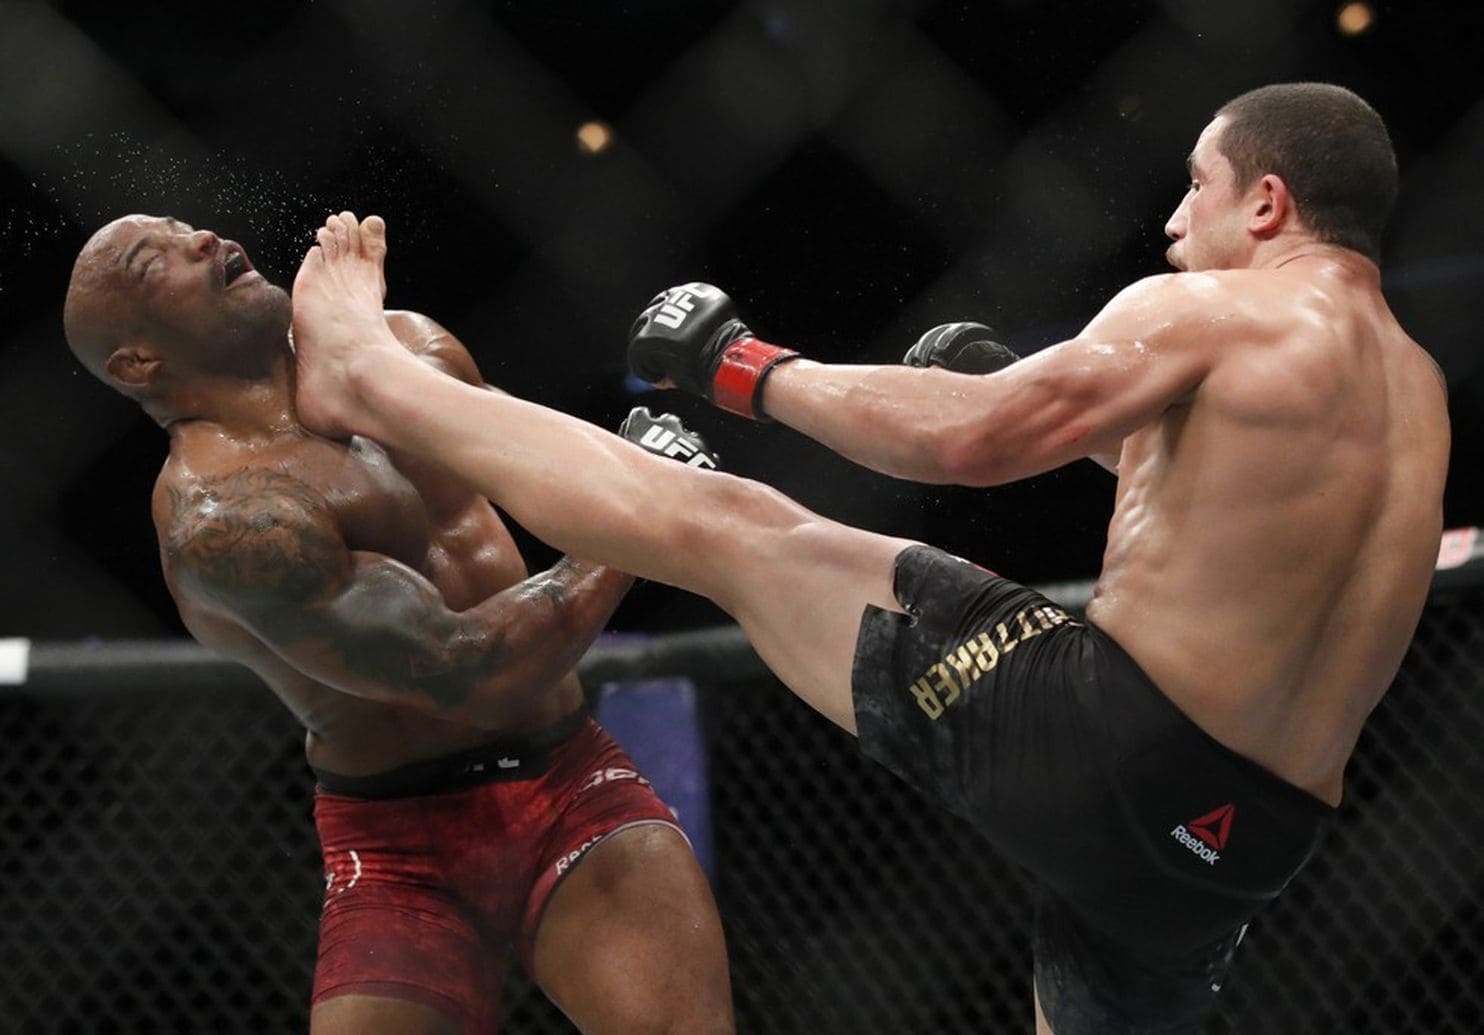 UFC: Robert Whittaker wins split decision over Yoel Romero - Romero